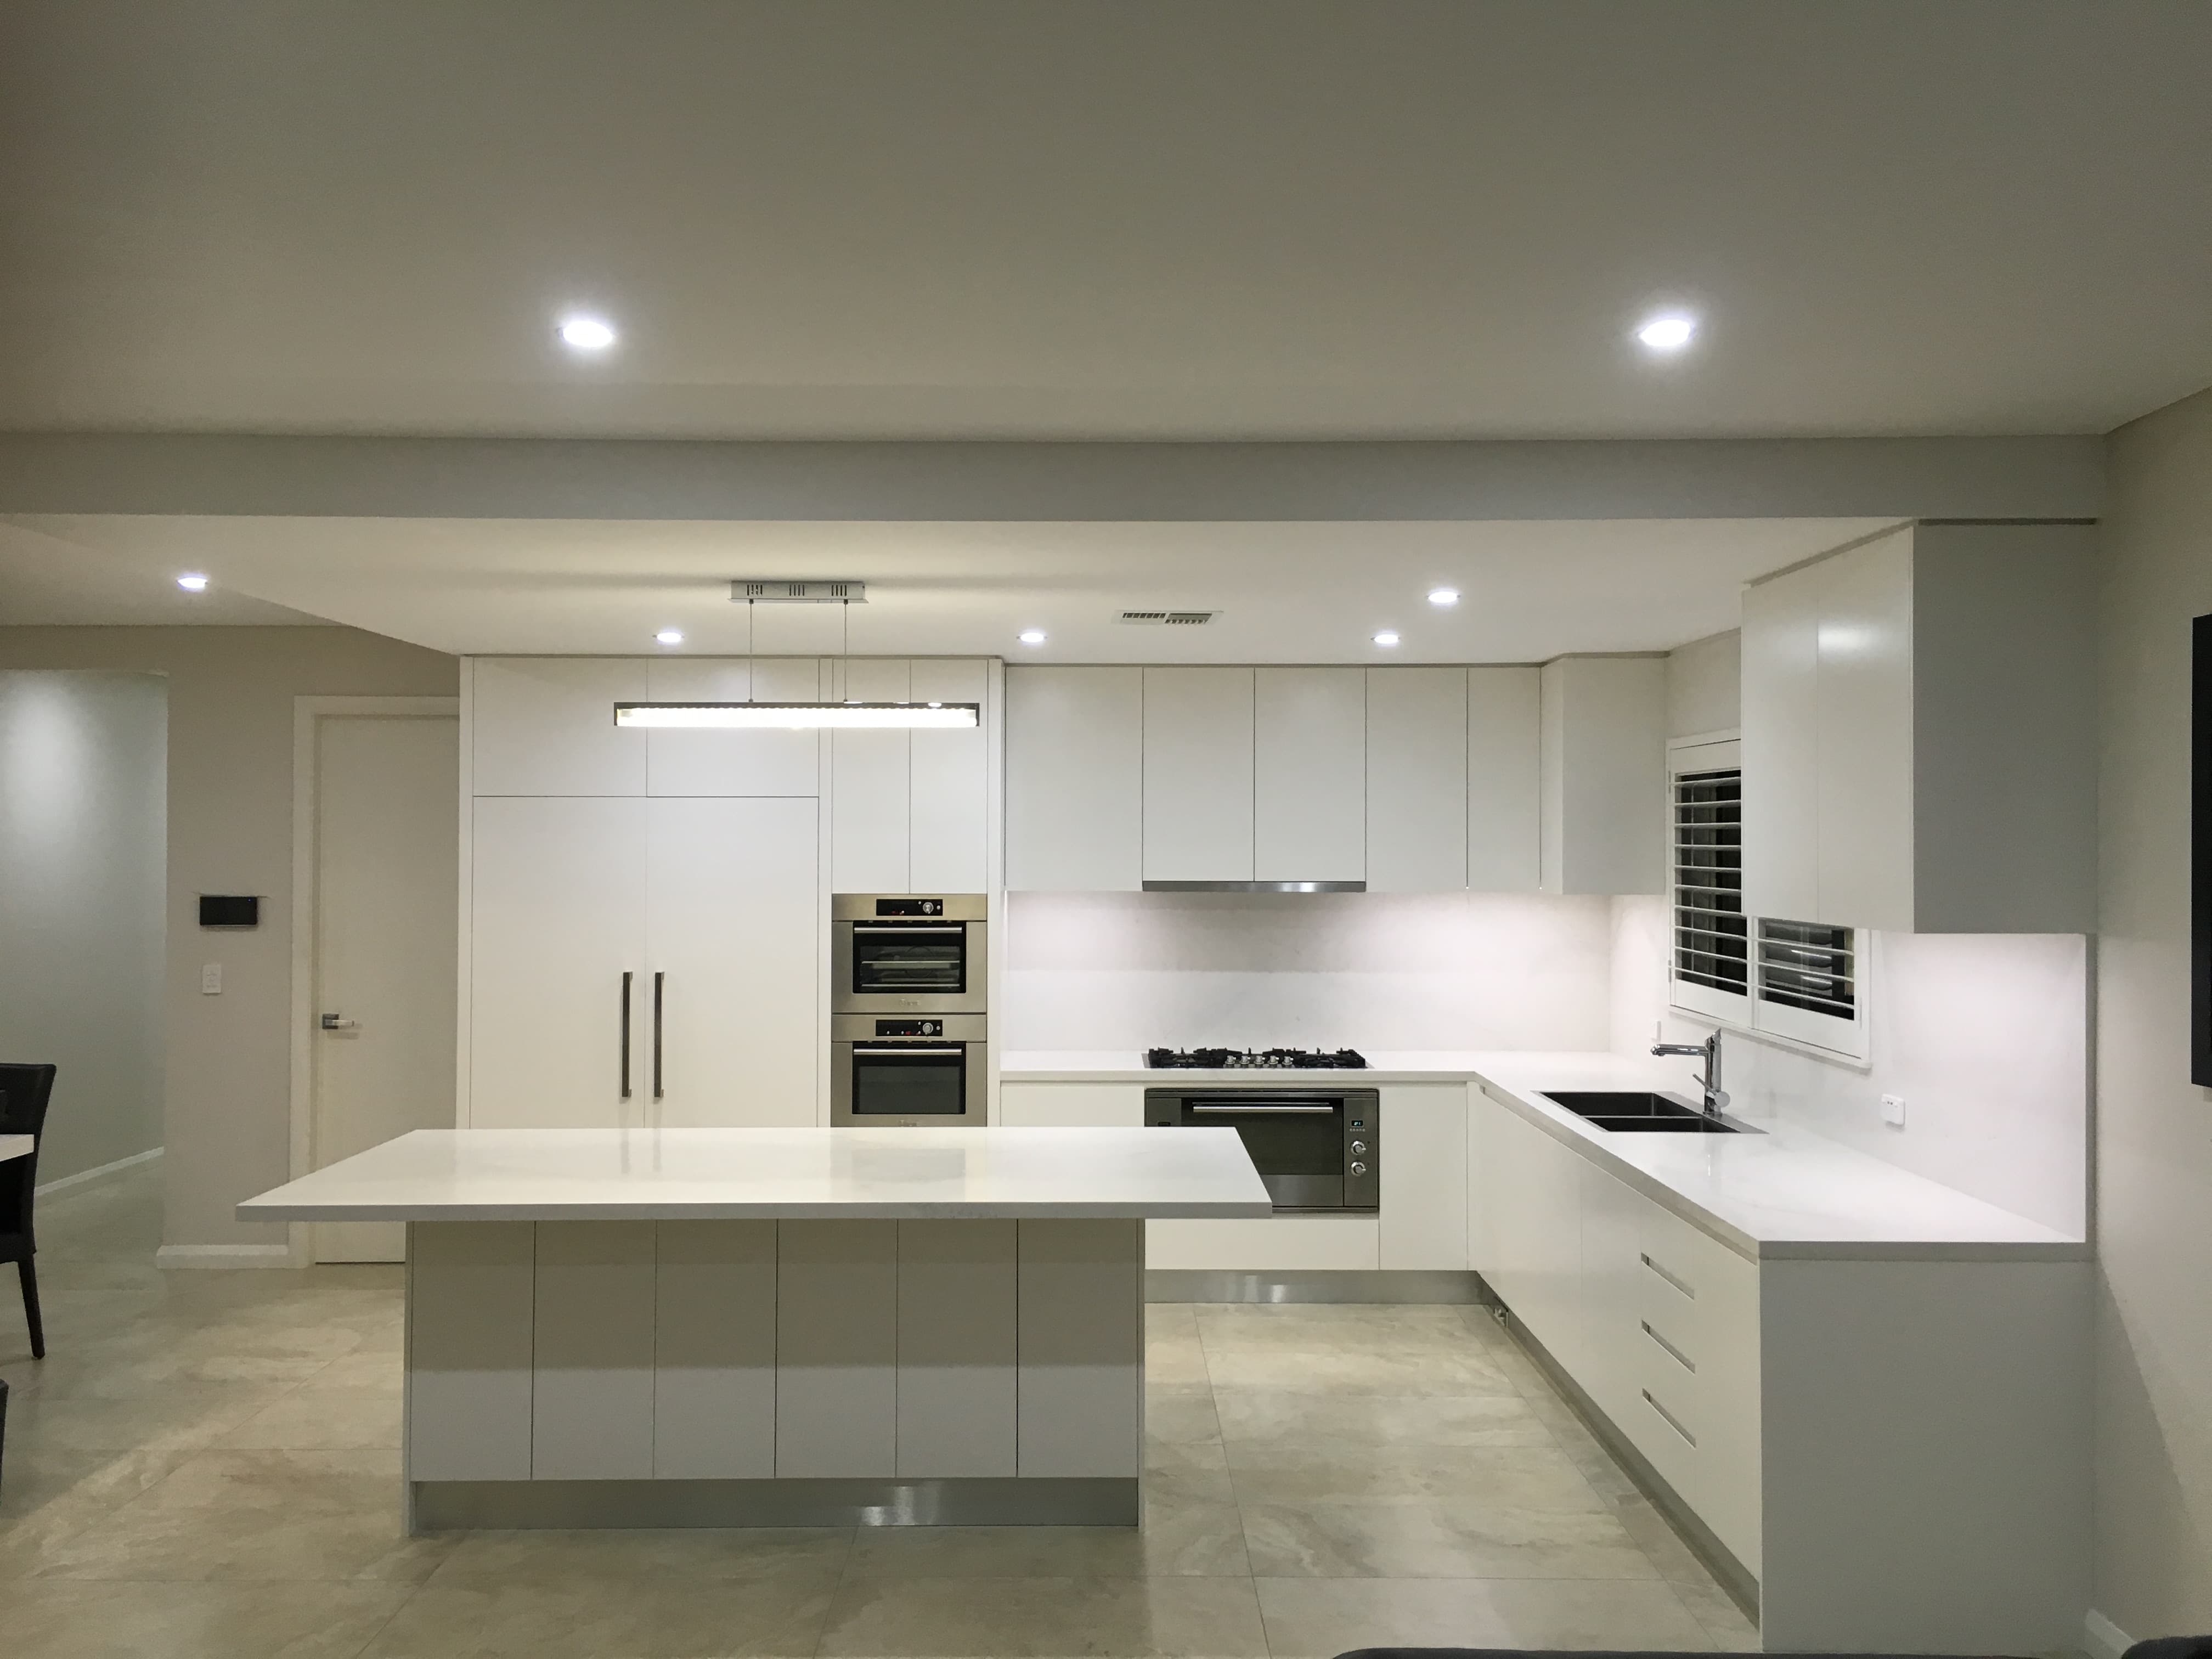 Kellyville kitchen renovation project